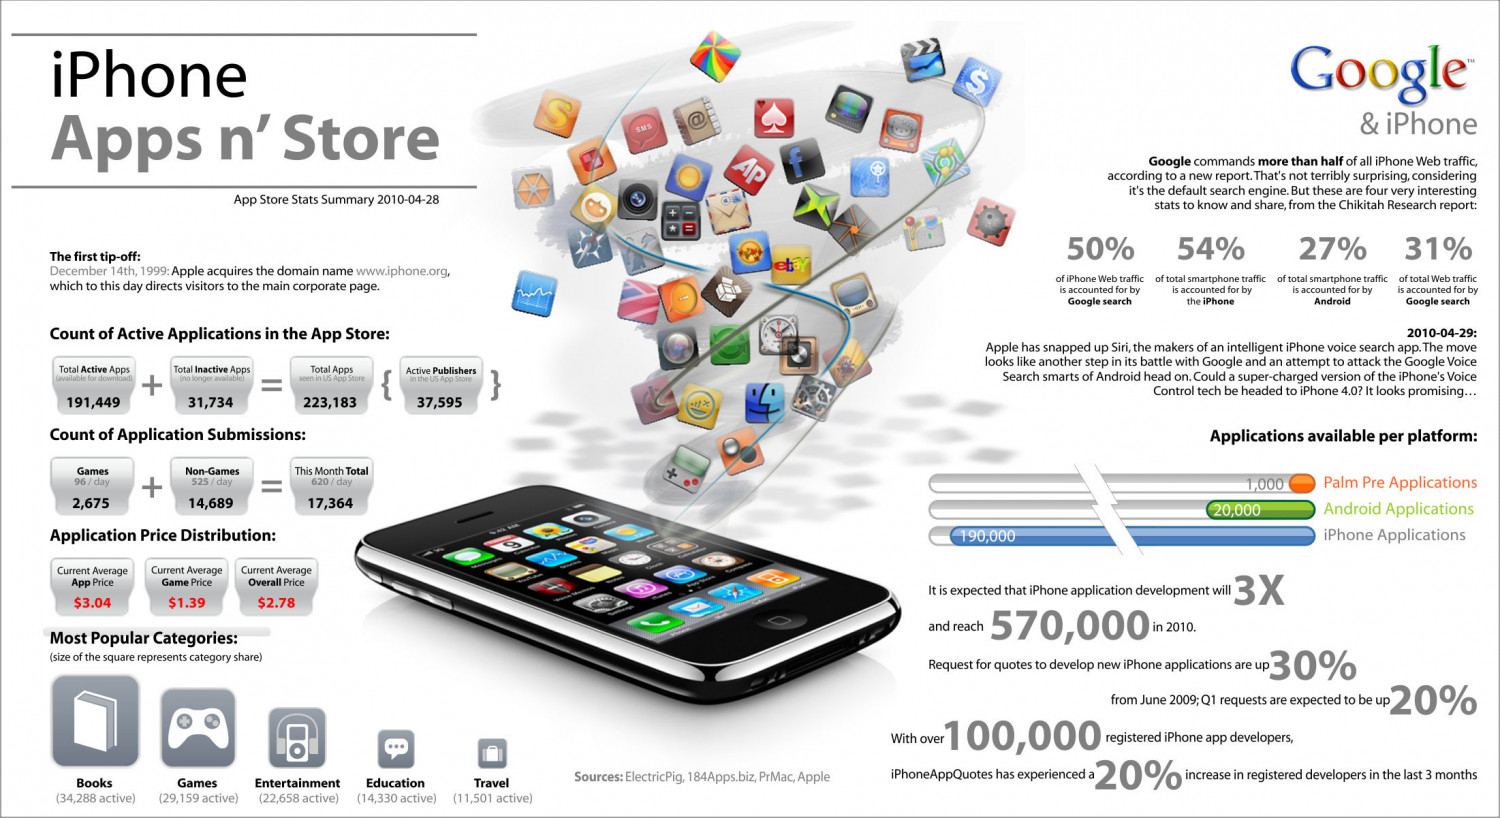 iPhone - Apps n' Store Infographic